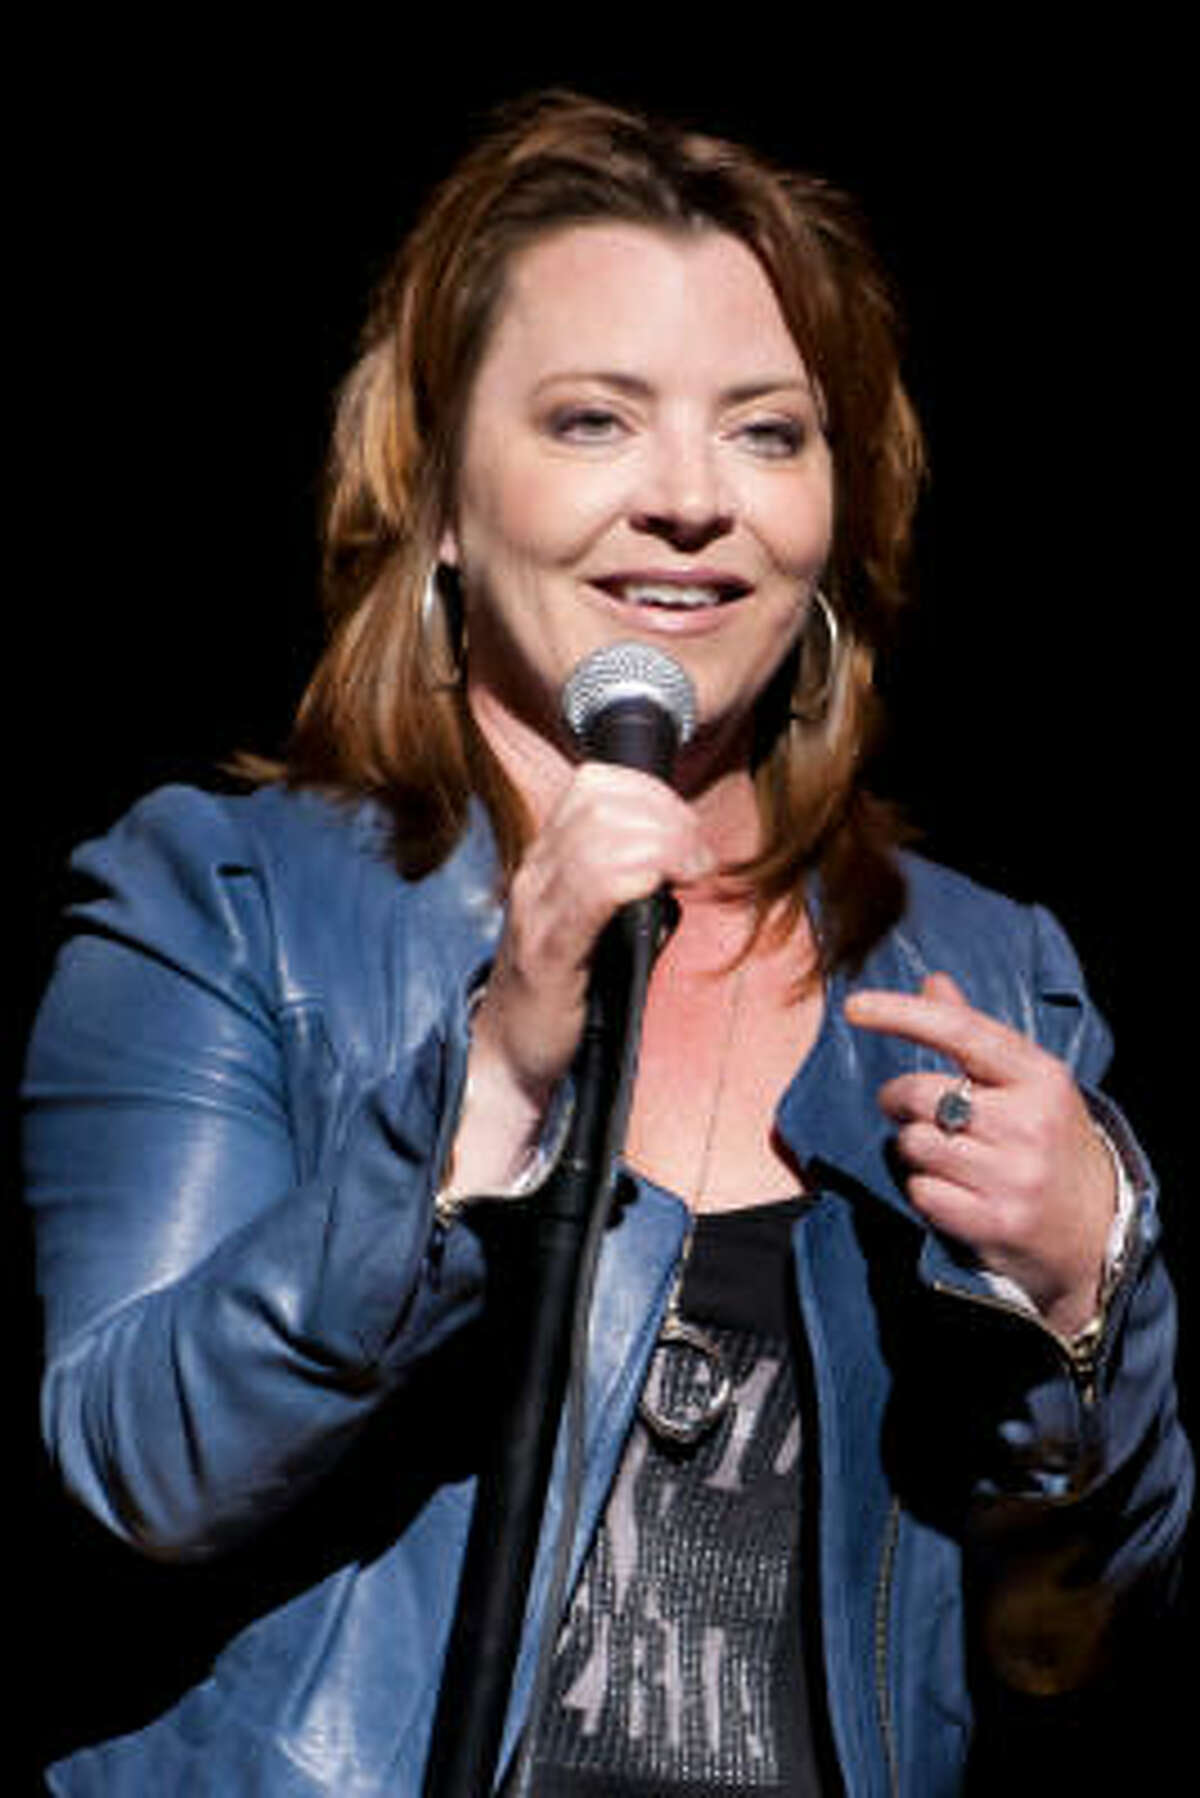 Comedian Kathleen Madigan stays busy with TV appearances, touring and USO performances.